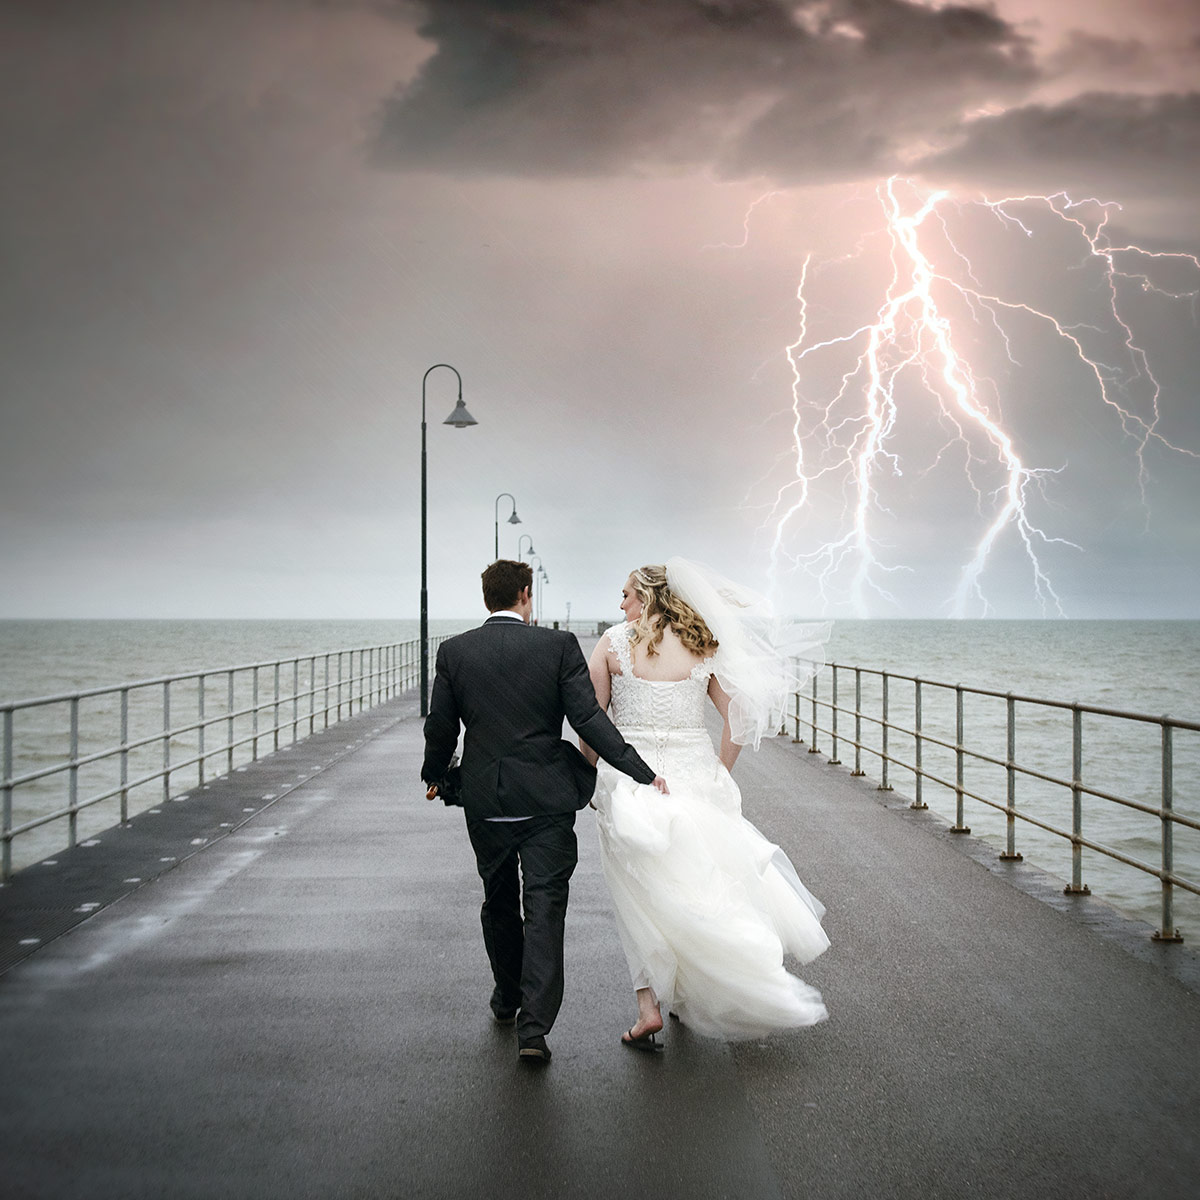 Bride and Groom with Lightning